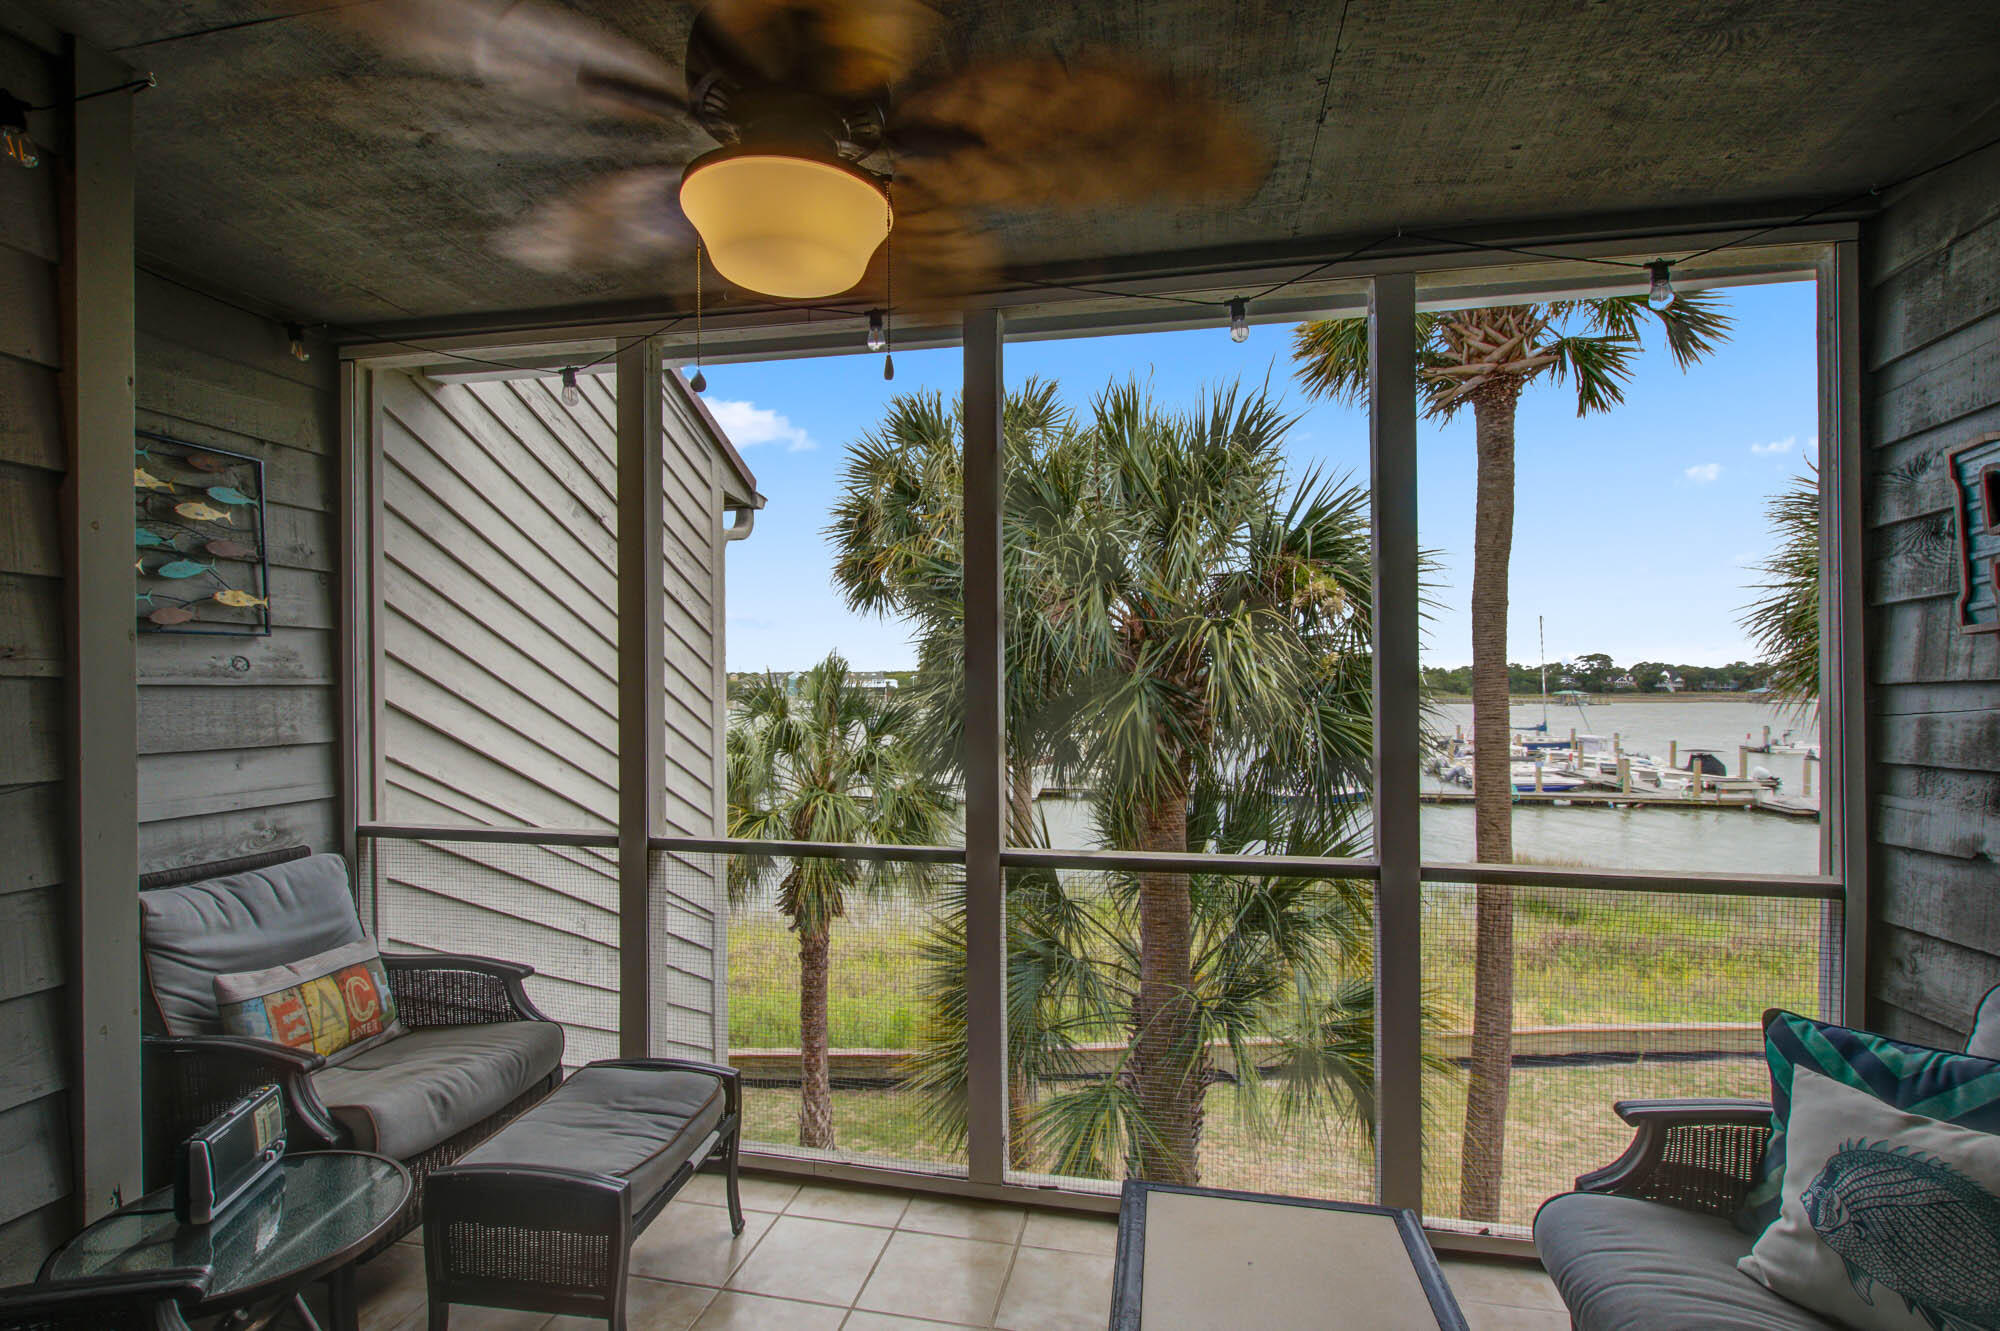 Mariners Cay Homes For Sale - 56 Mariners Cay, Folly Beach, SC - 6